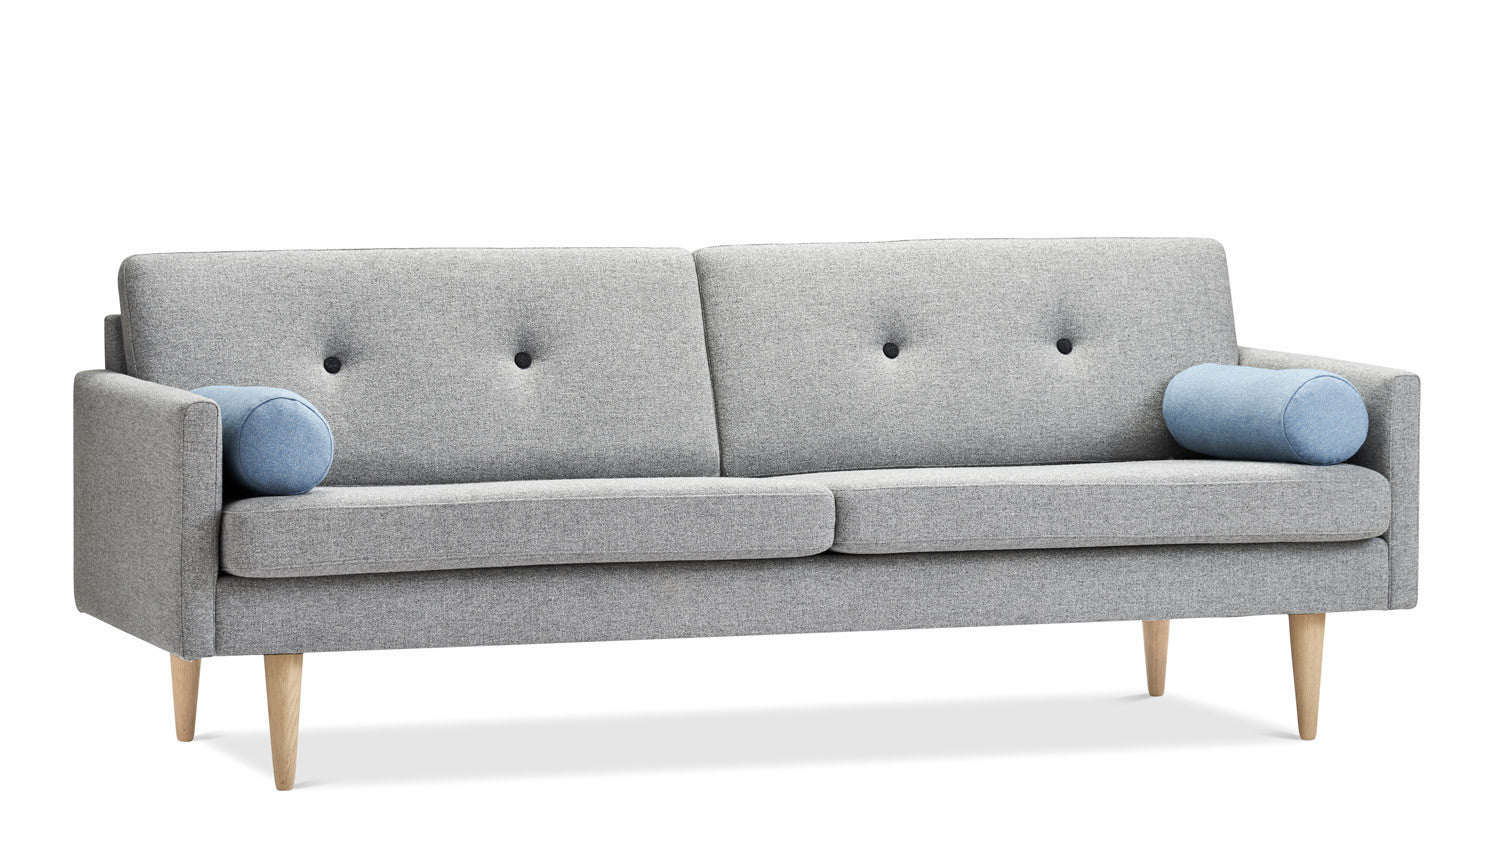 Sensational Sofas Couch Potato Company Download Free Architecture Designs Scobabritishbridgeorg